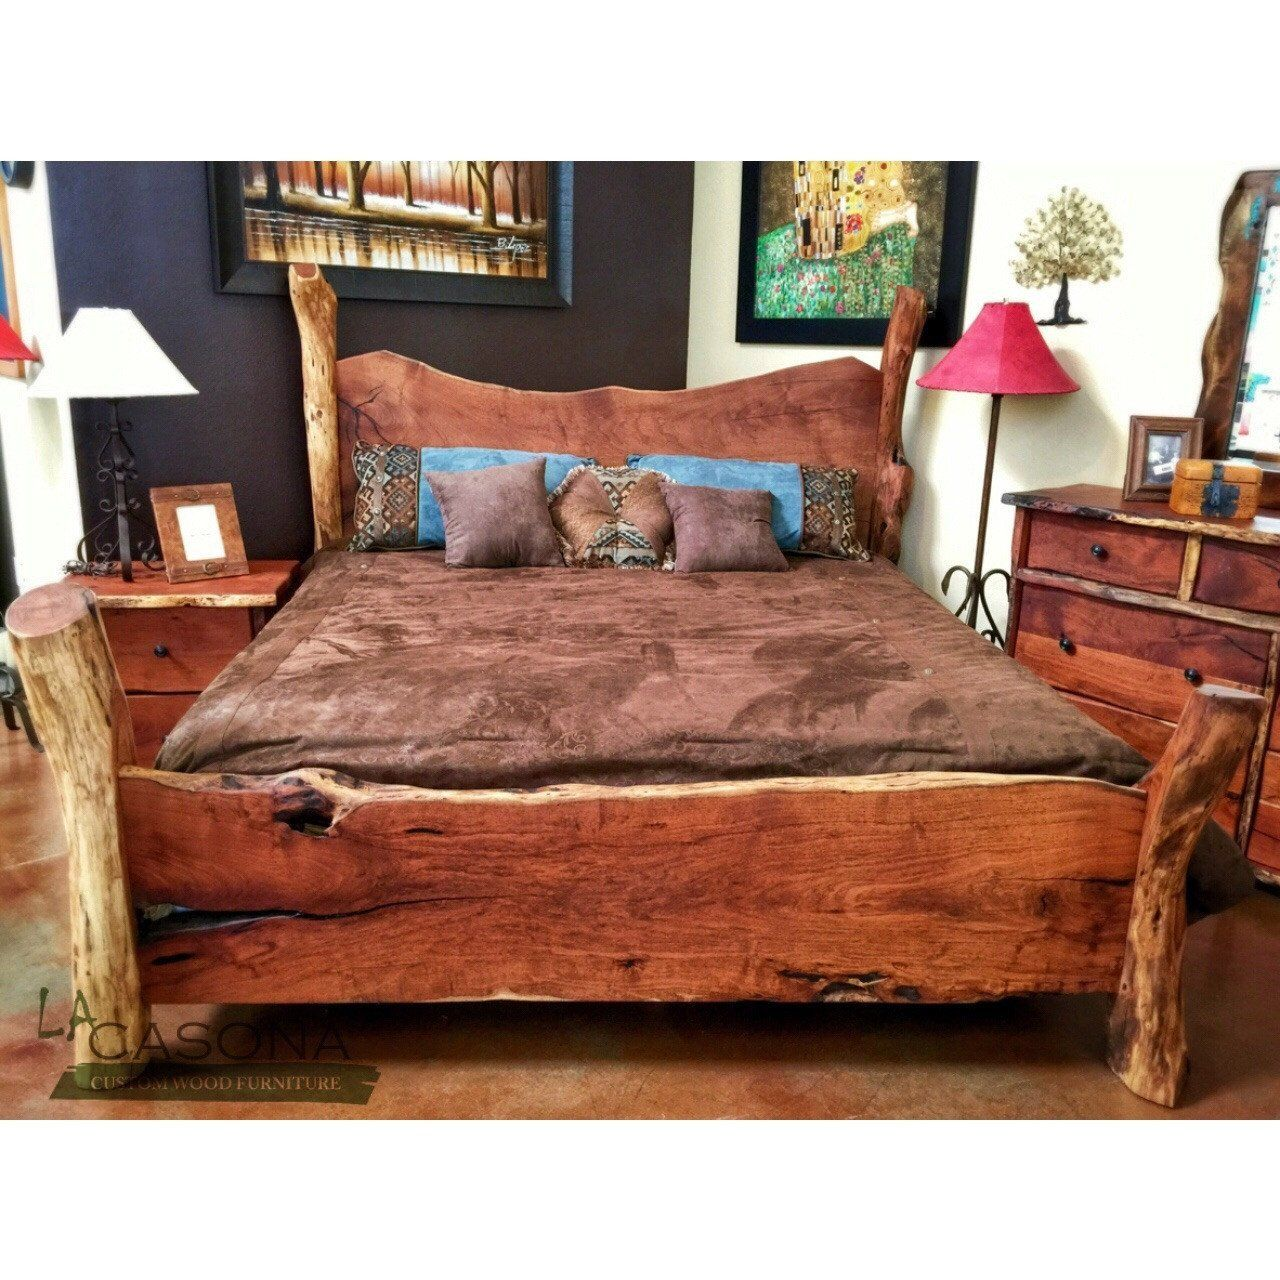 Live Edge Wood Slab Bed Rustic bedding, Bed, Rustic